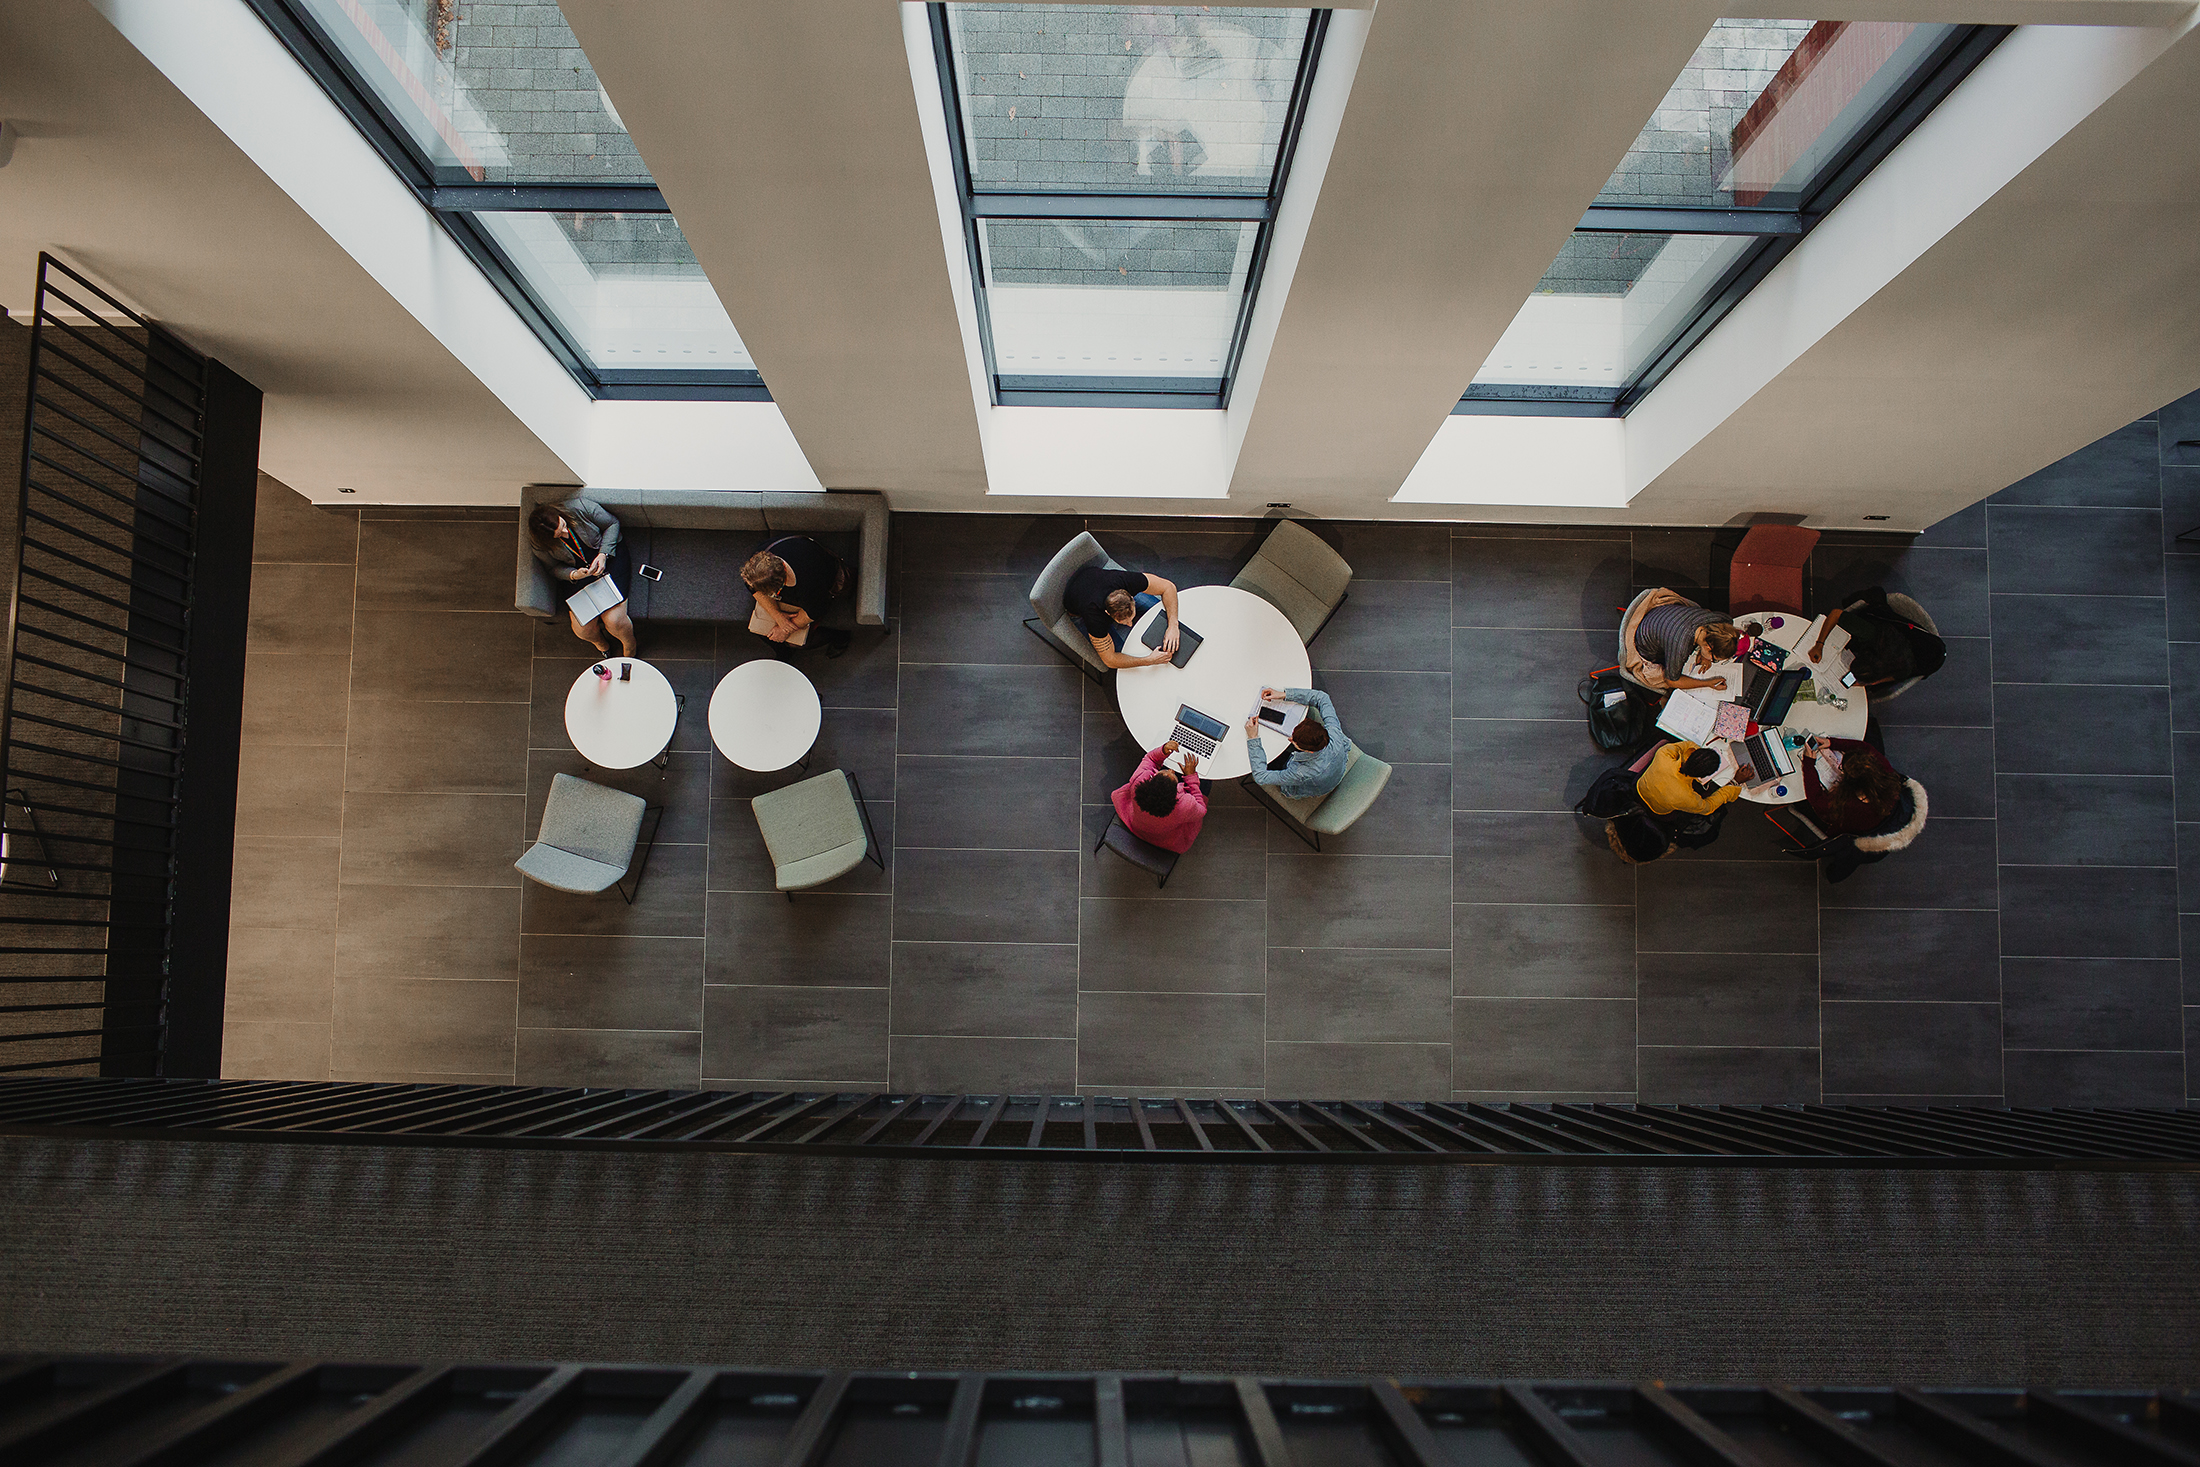 Overview if seacole study space